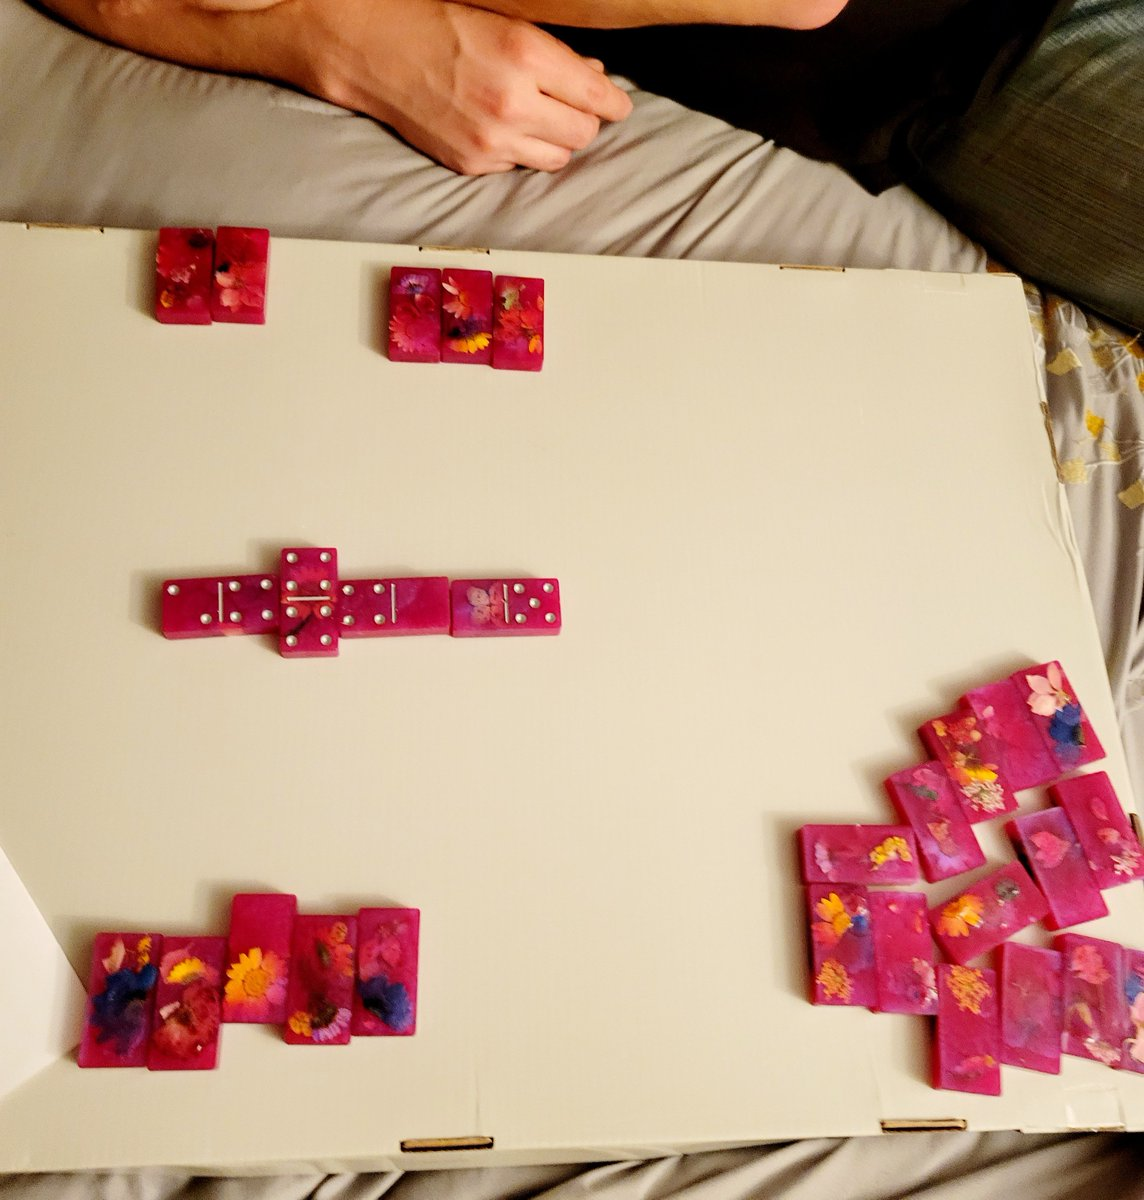 Okay so I love the #dominoes I made, I was so excited to beat my husband with my #pink dominoes and jinxed myself 🤣🤣🤣 Oh well I will get him next time!!